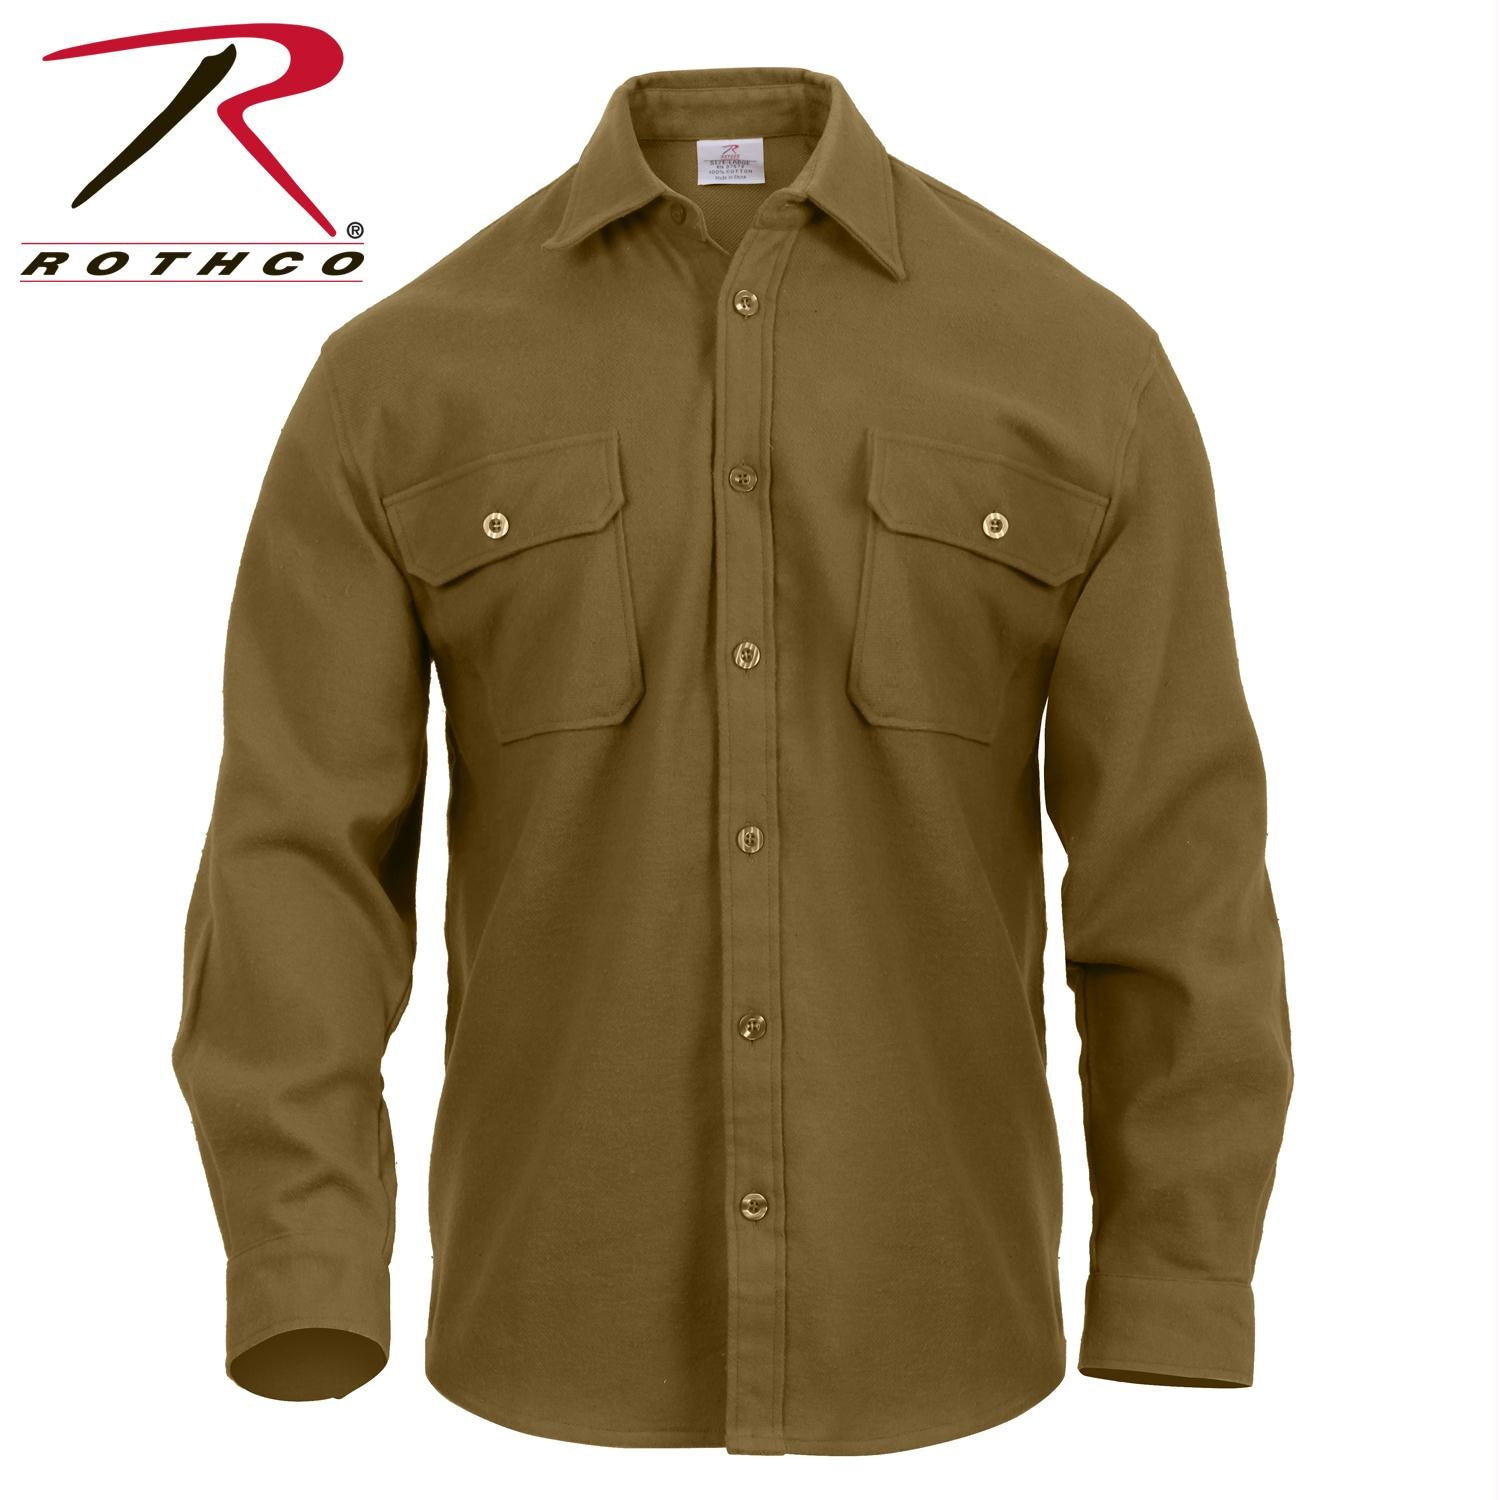 Rothco Heavy Weight Solid Flannel Shirt - Coyote Brown / M